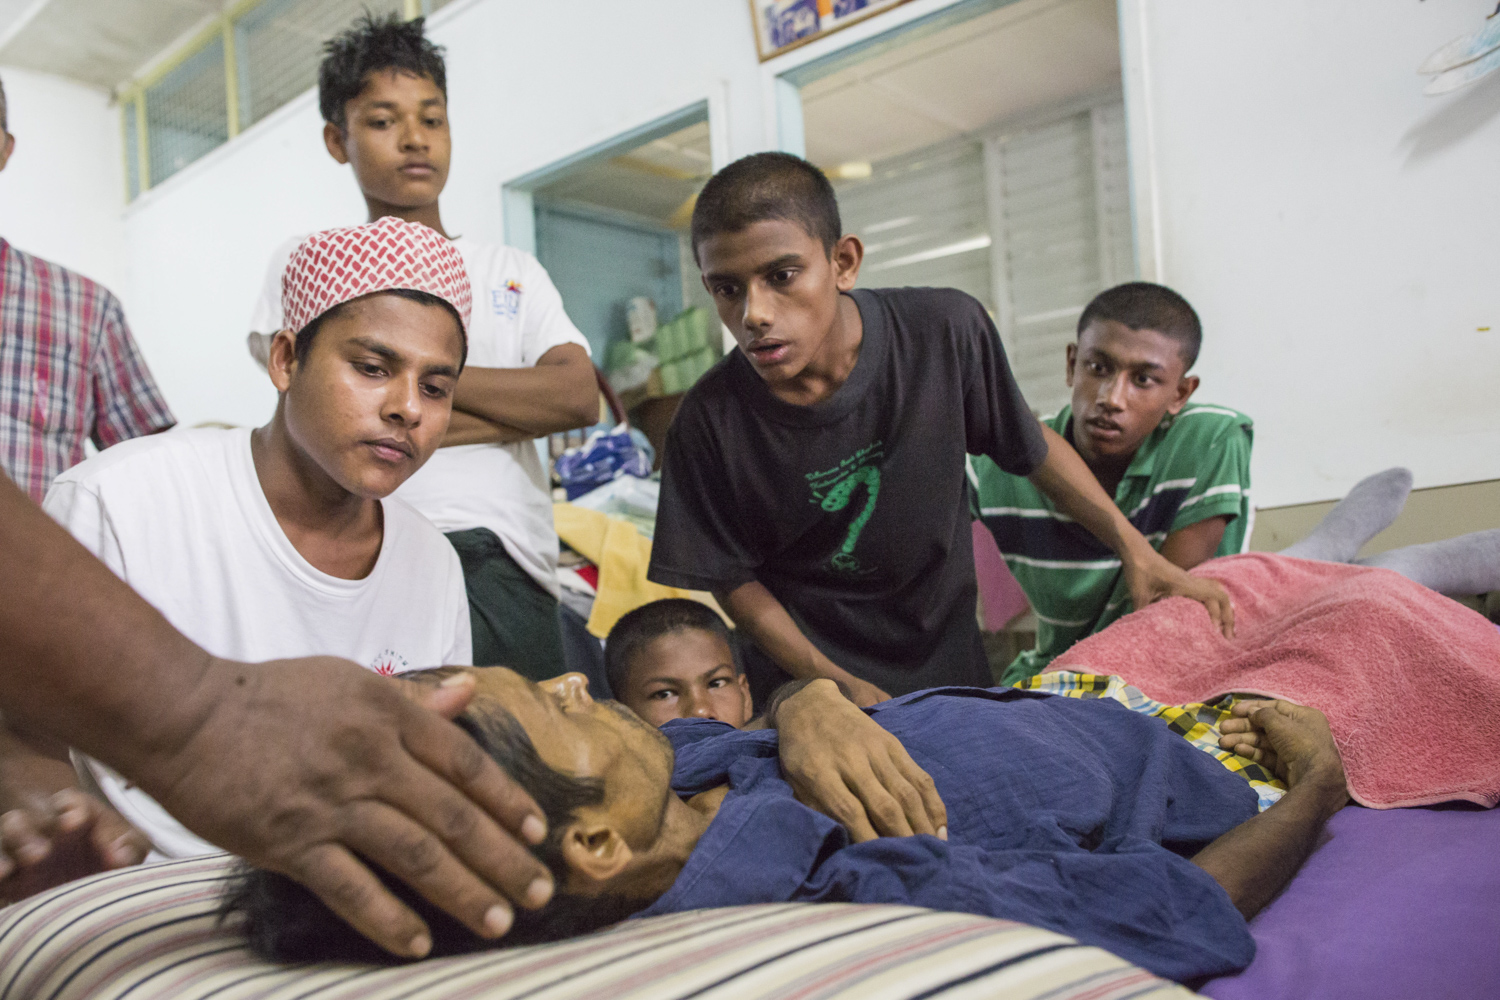 Alex and the Rohingya boys watching over Rashedul as his blood pressure drops dangerously low. Rashedul was terminally ill with liver cancer, and needed palliative care.